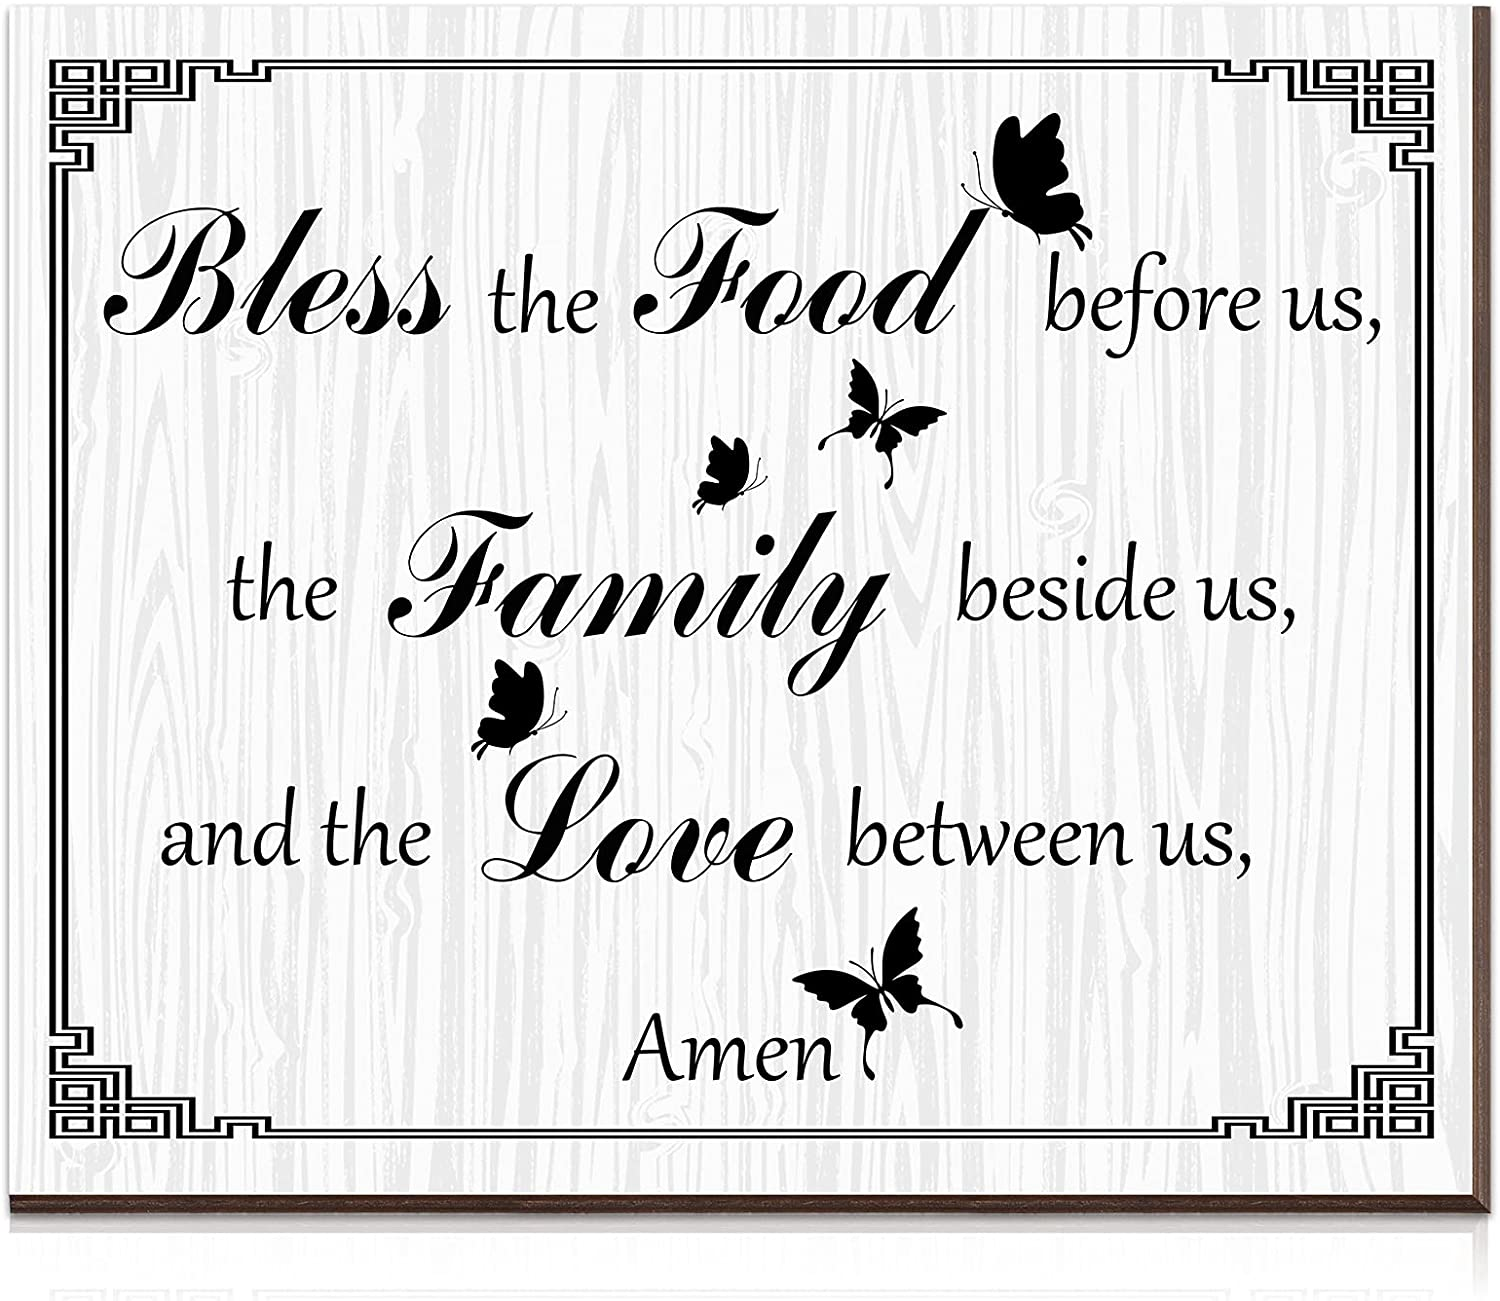 Bless The Food Before Us Rustic Wooden Wall Decor Blessing Farmhouse Hanging Decoration Wooden Heartwarming Quote Modern Farmhouse Decor for House Kitchen Dining Wall Decor